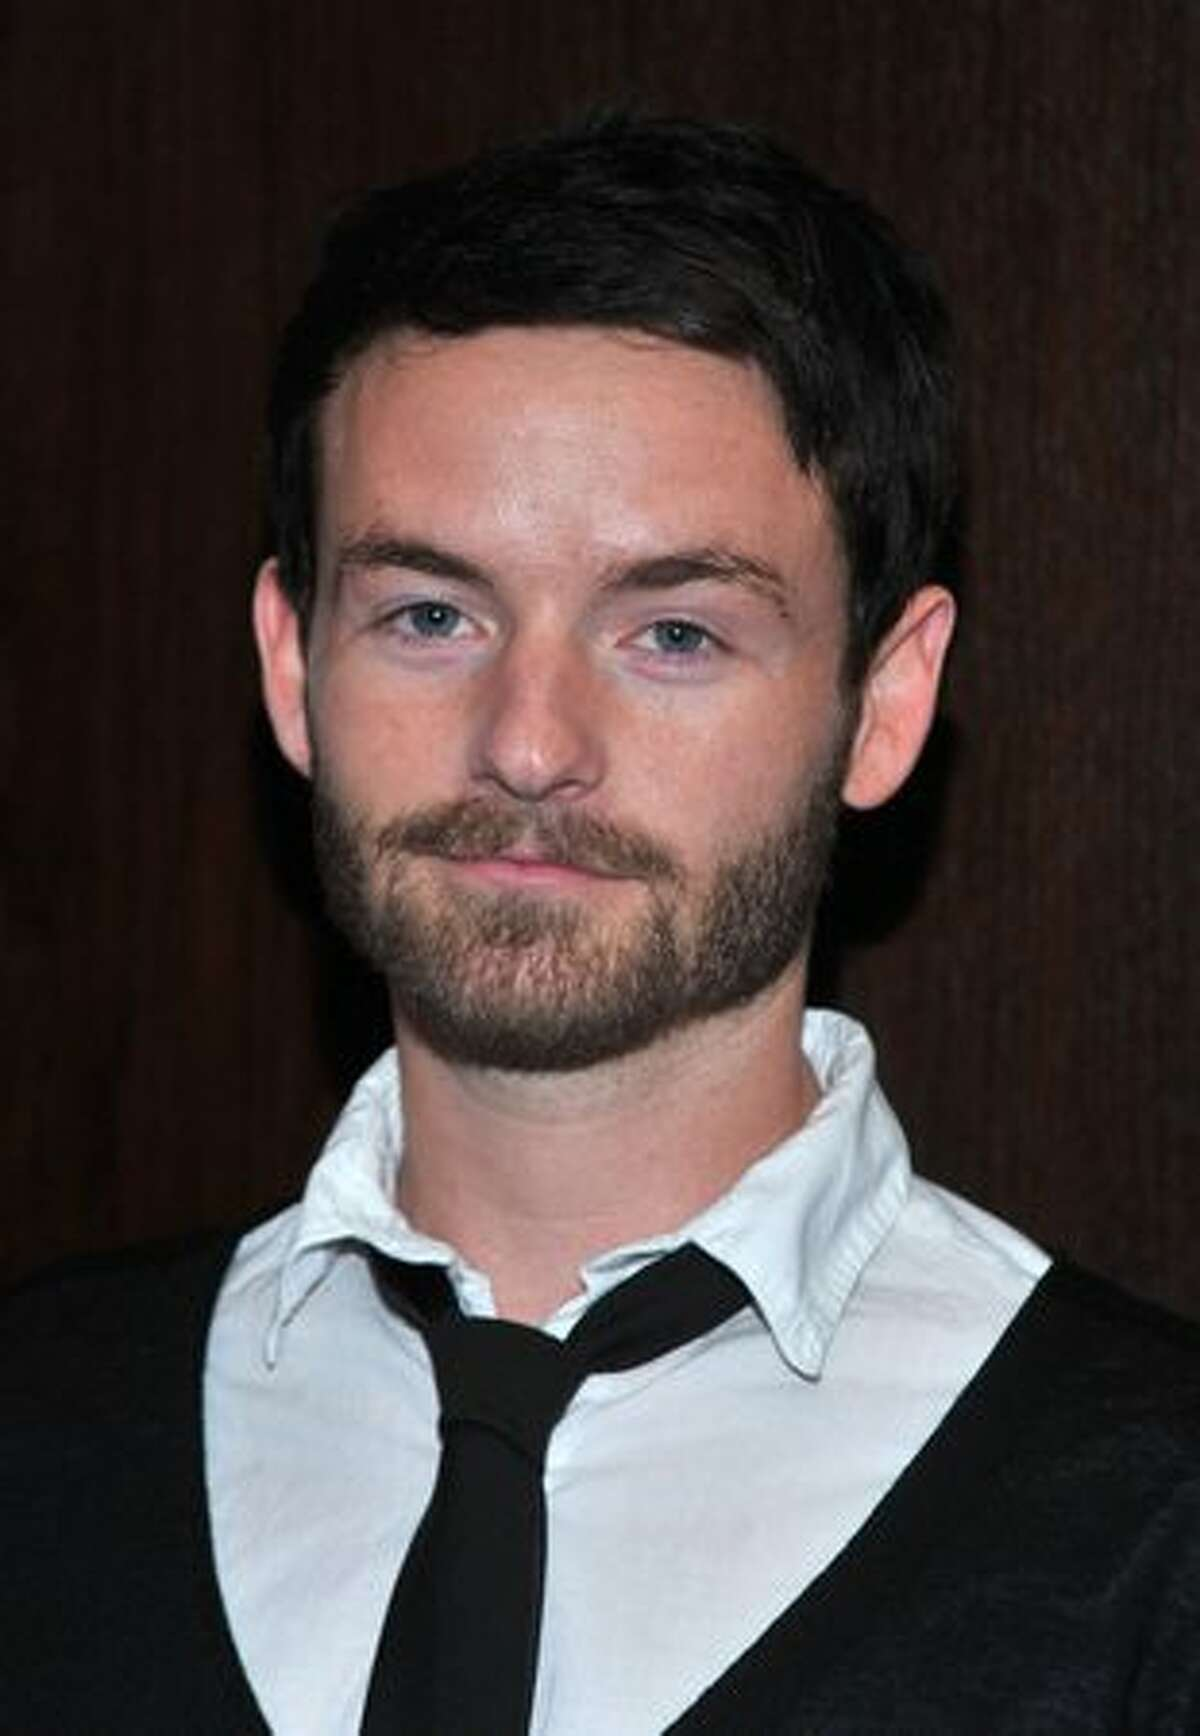 Christopher Masterson: The actor is best known for his role as Francis on